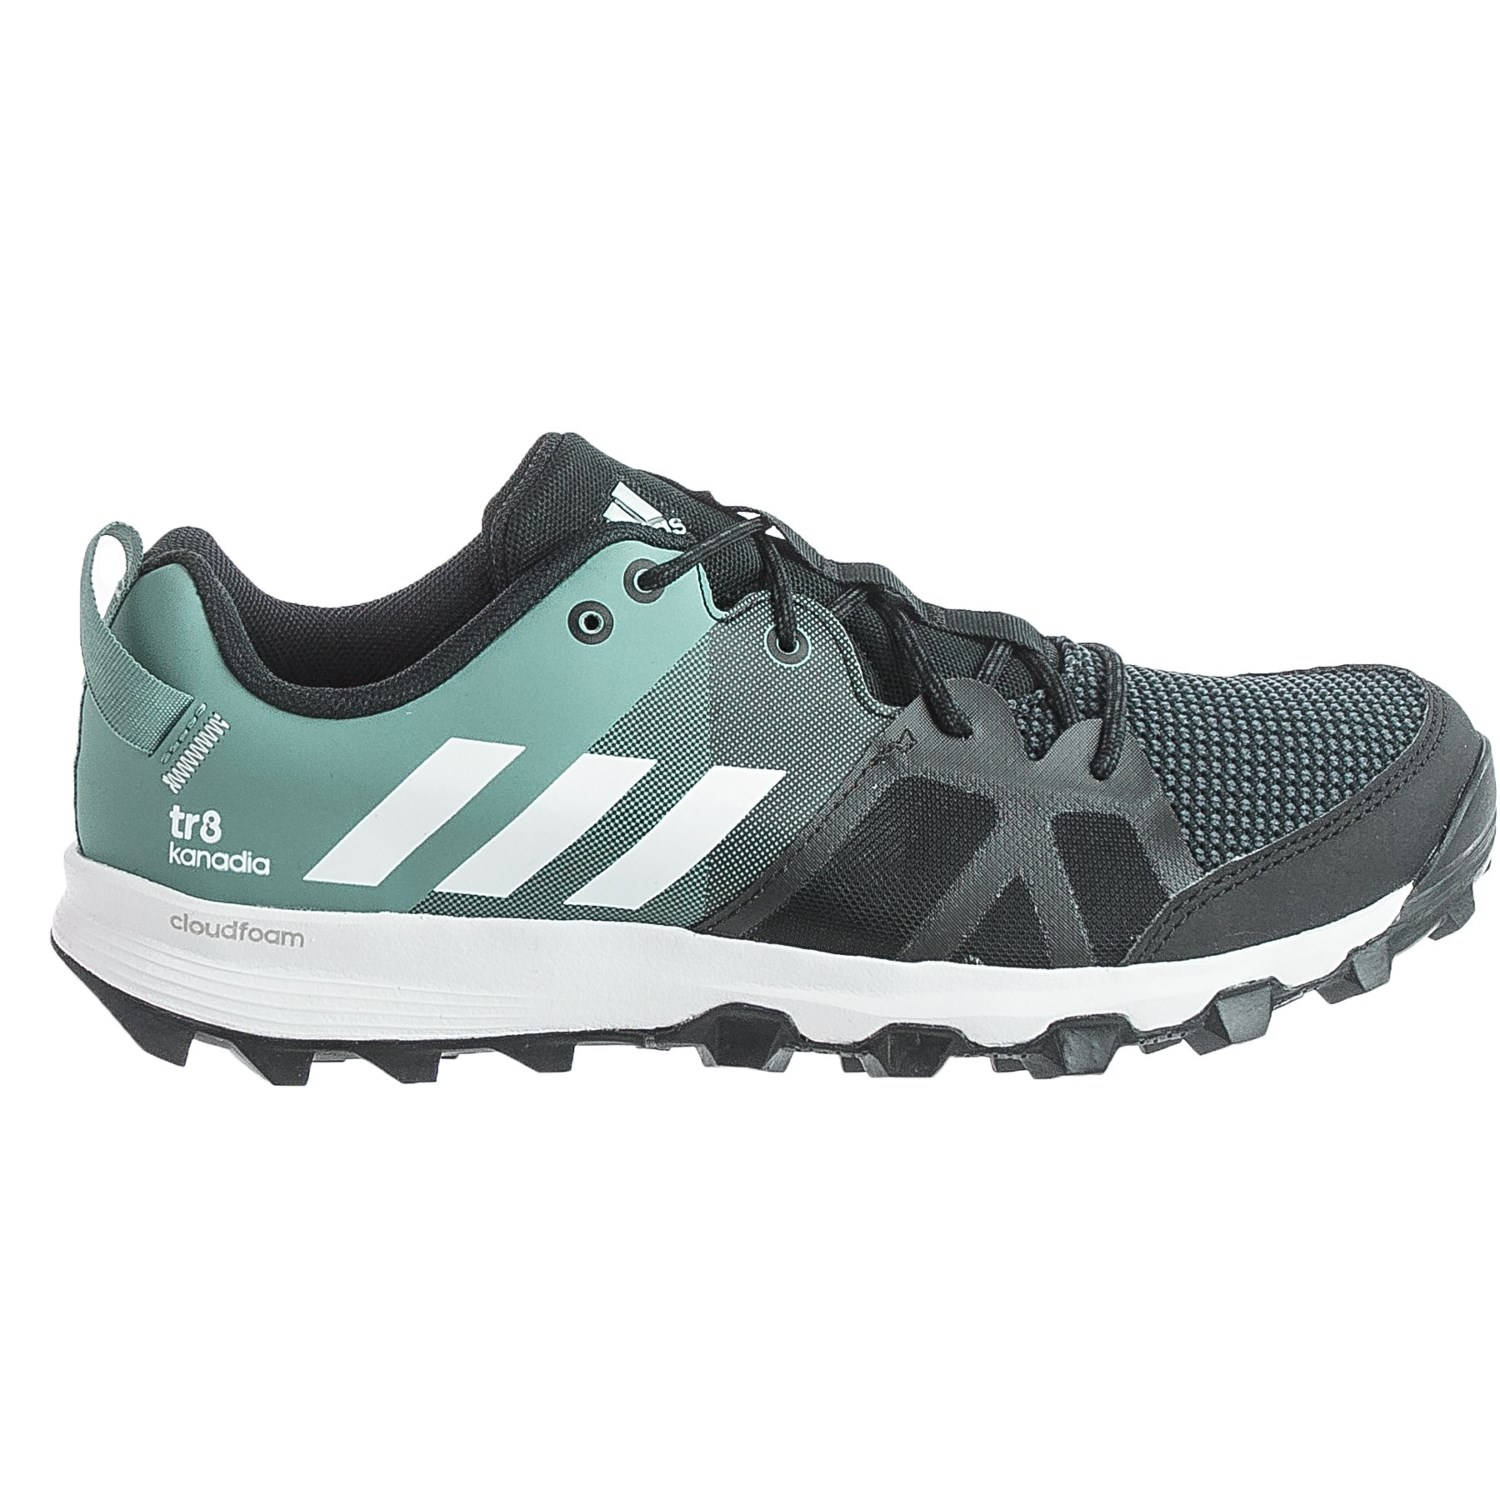 Elegant Adidas Womens Running Shoes - 28 Images - Llvshoesforgymm Adidas Running Women S Duramo 6 ...